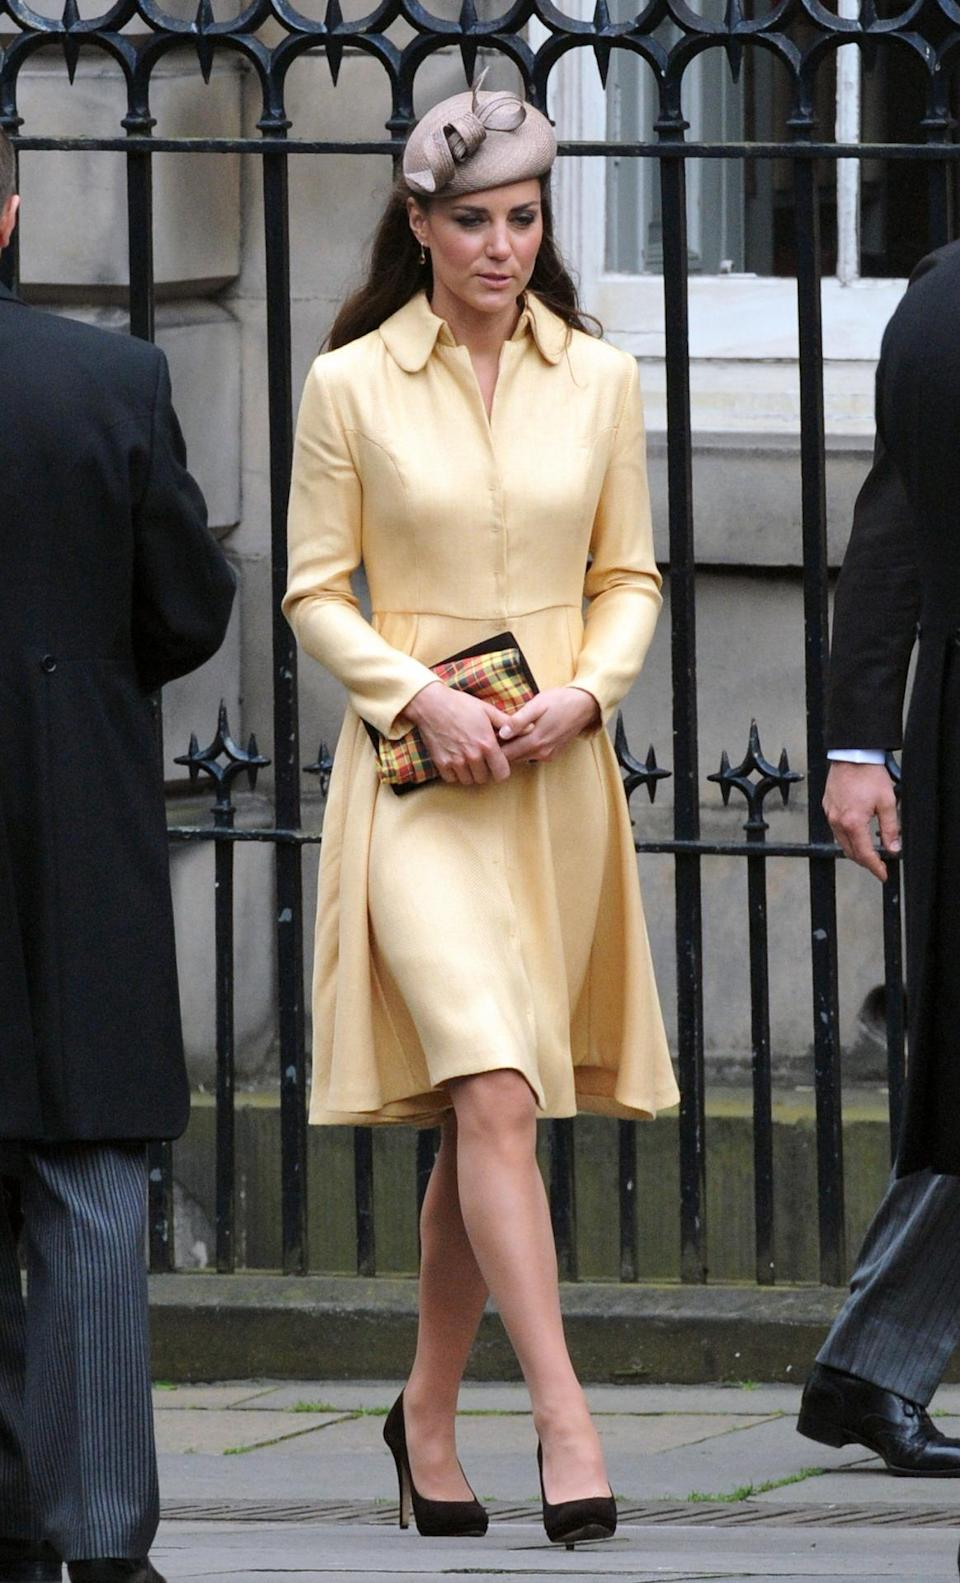 <p>For a ceremony in Scotland, the Duchess donned a bespoke yellow look by Emilia Wickstead. She paired the look with a cappuccino Whiteley hat and matching brown shoes and clutch from Emmy London.</p><p><i>[Photo: PA]</i></p>